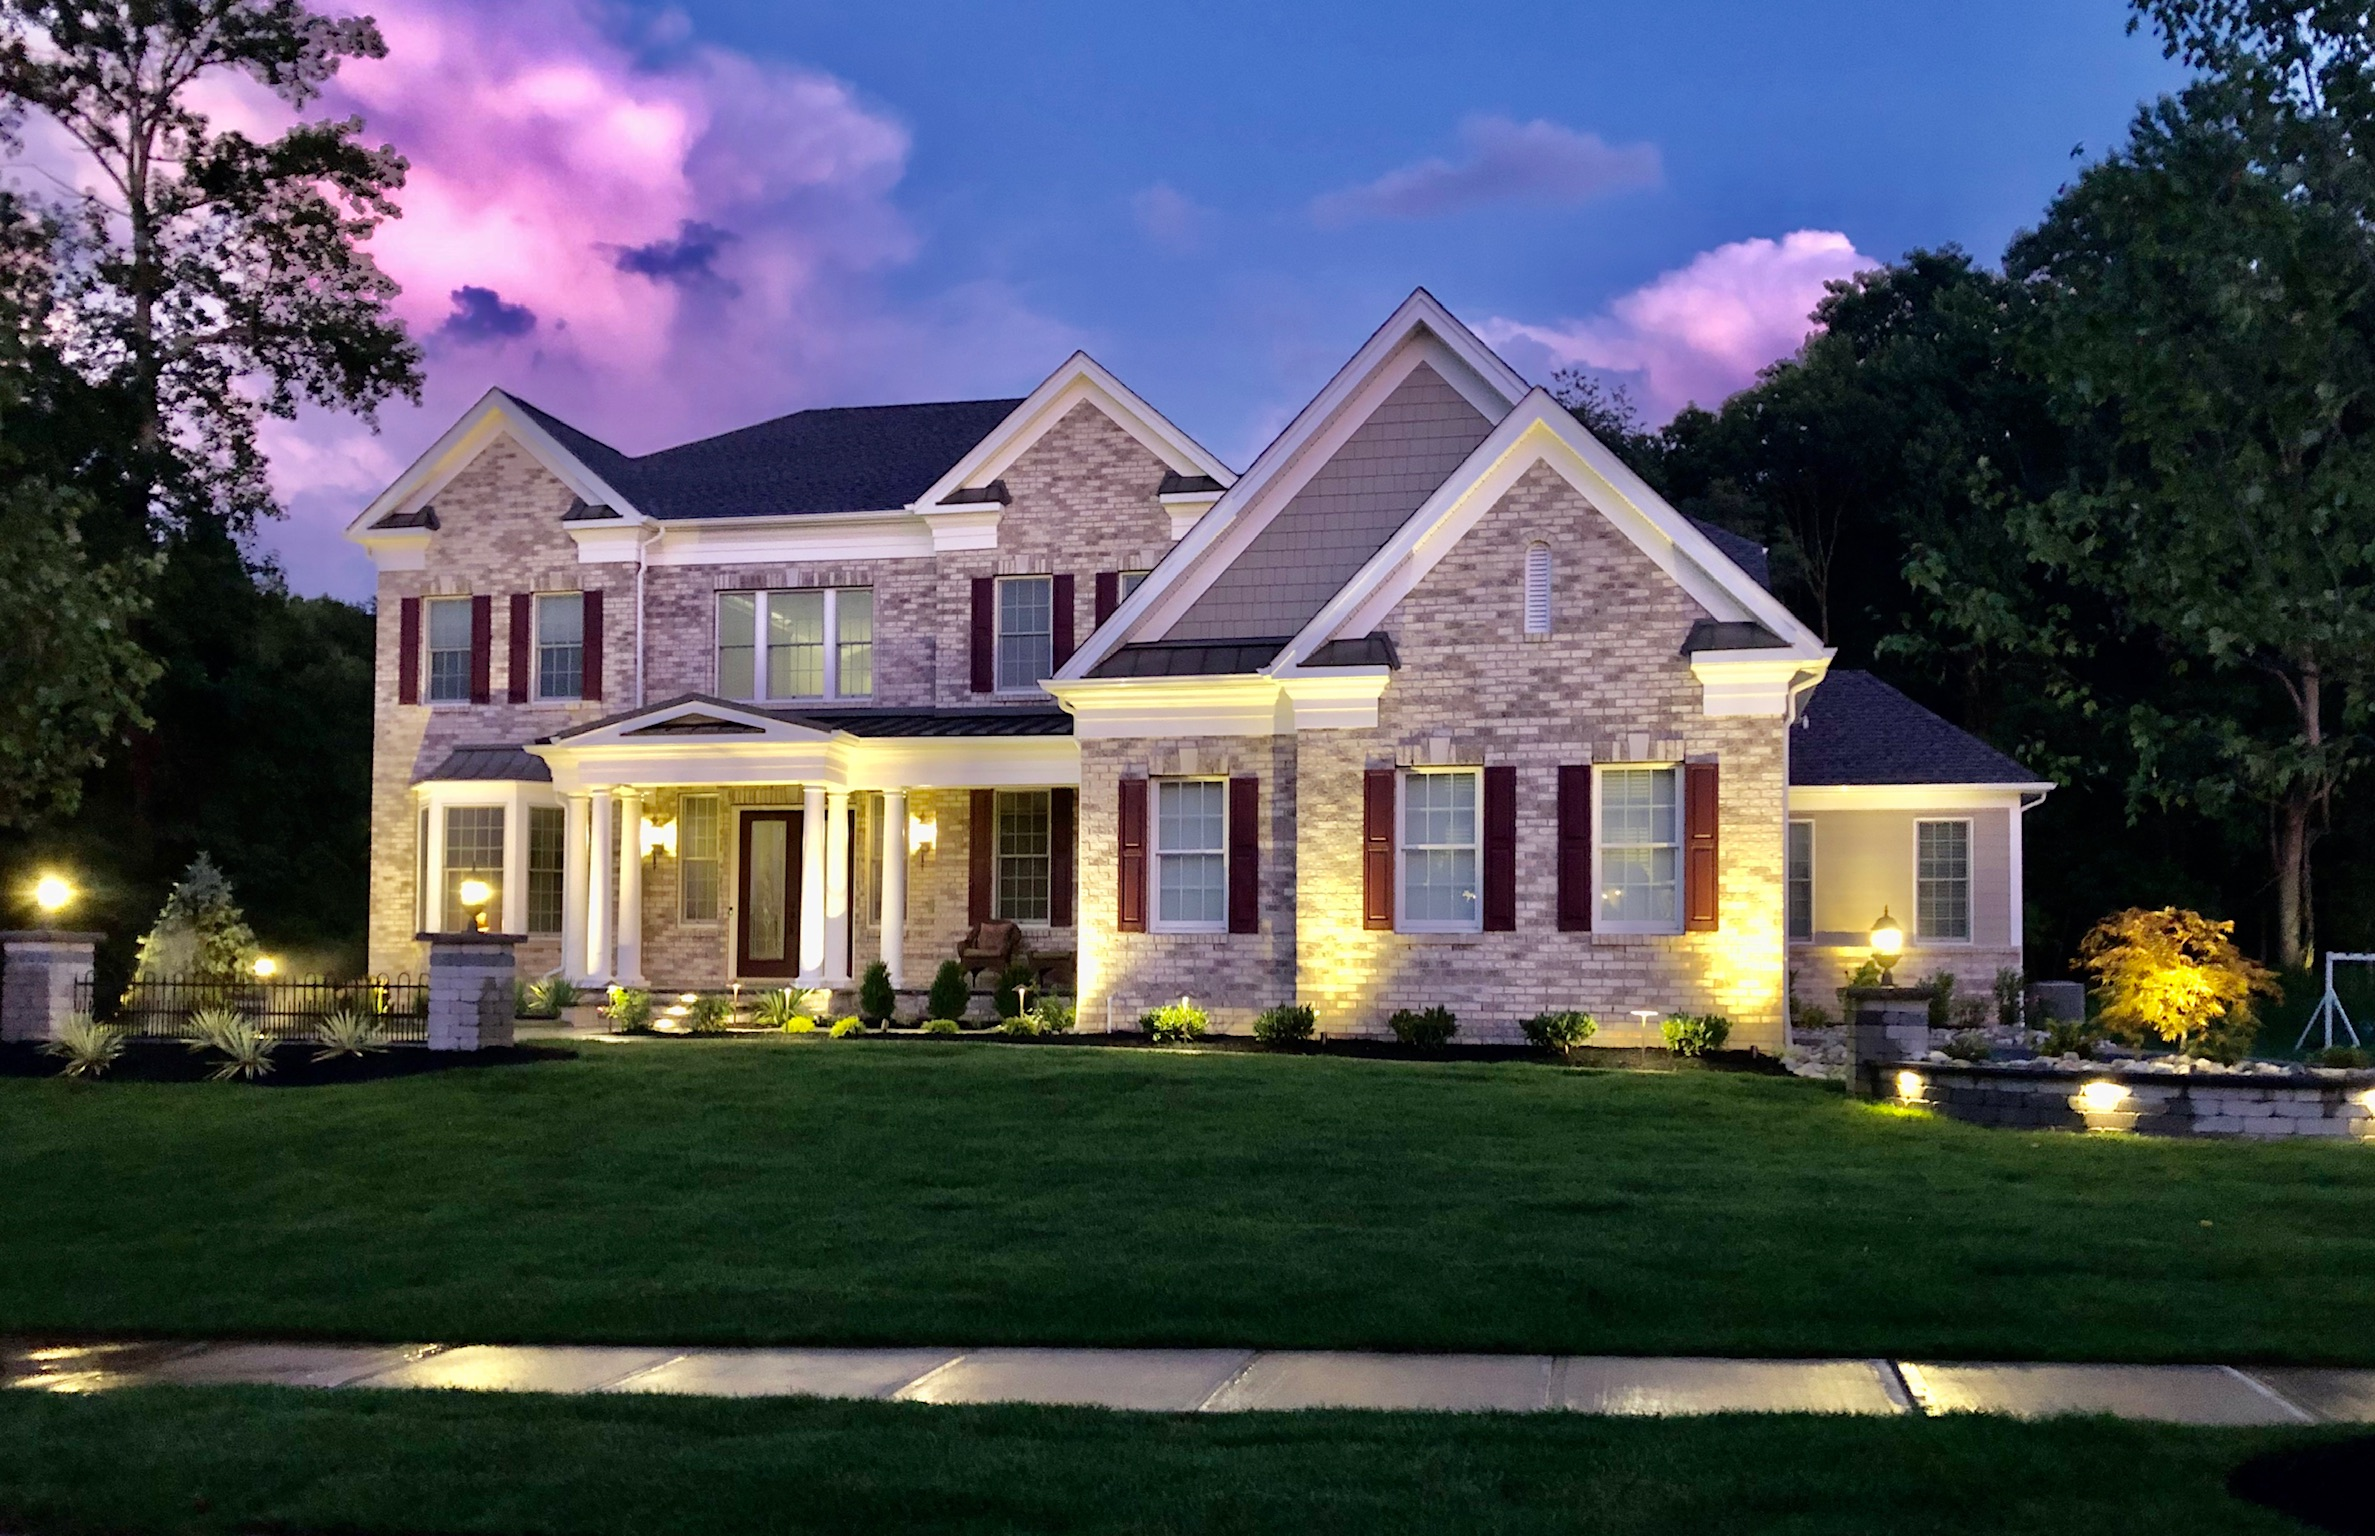 LED Lighting services in nj